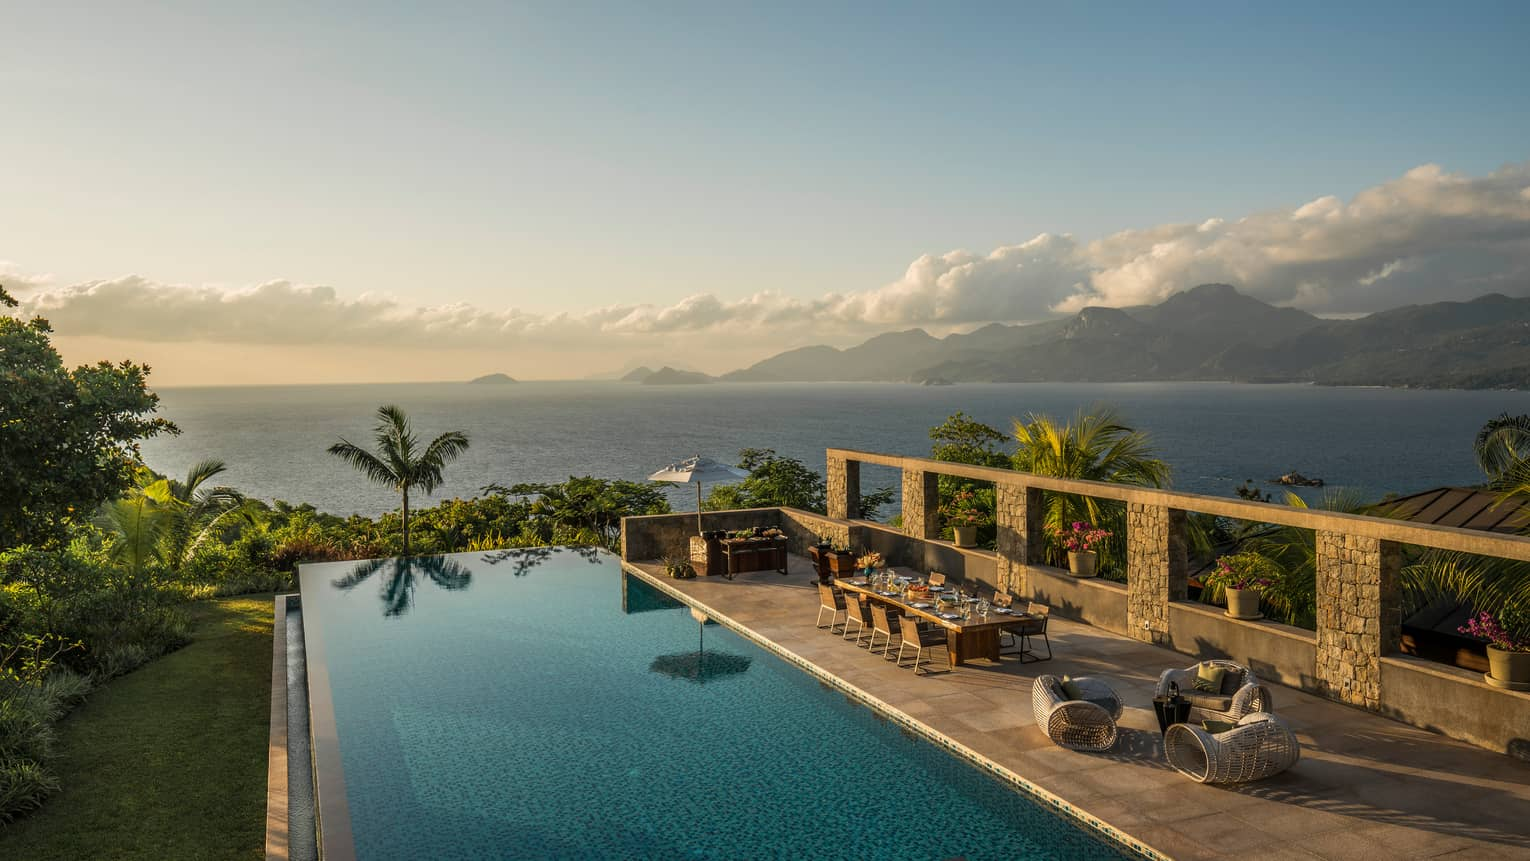 Infinity pool overlooking ocean with palm trees, table, chairs and lounge area